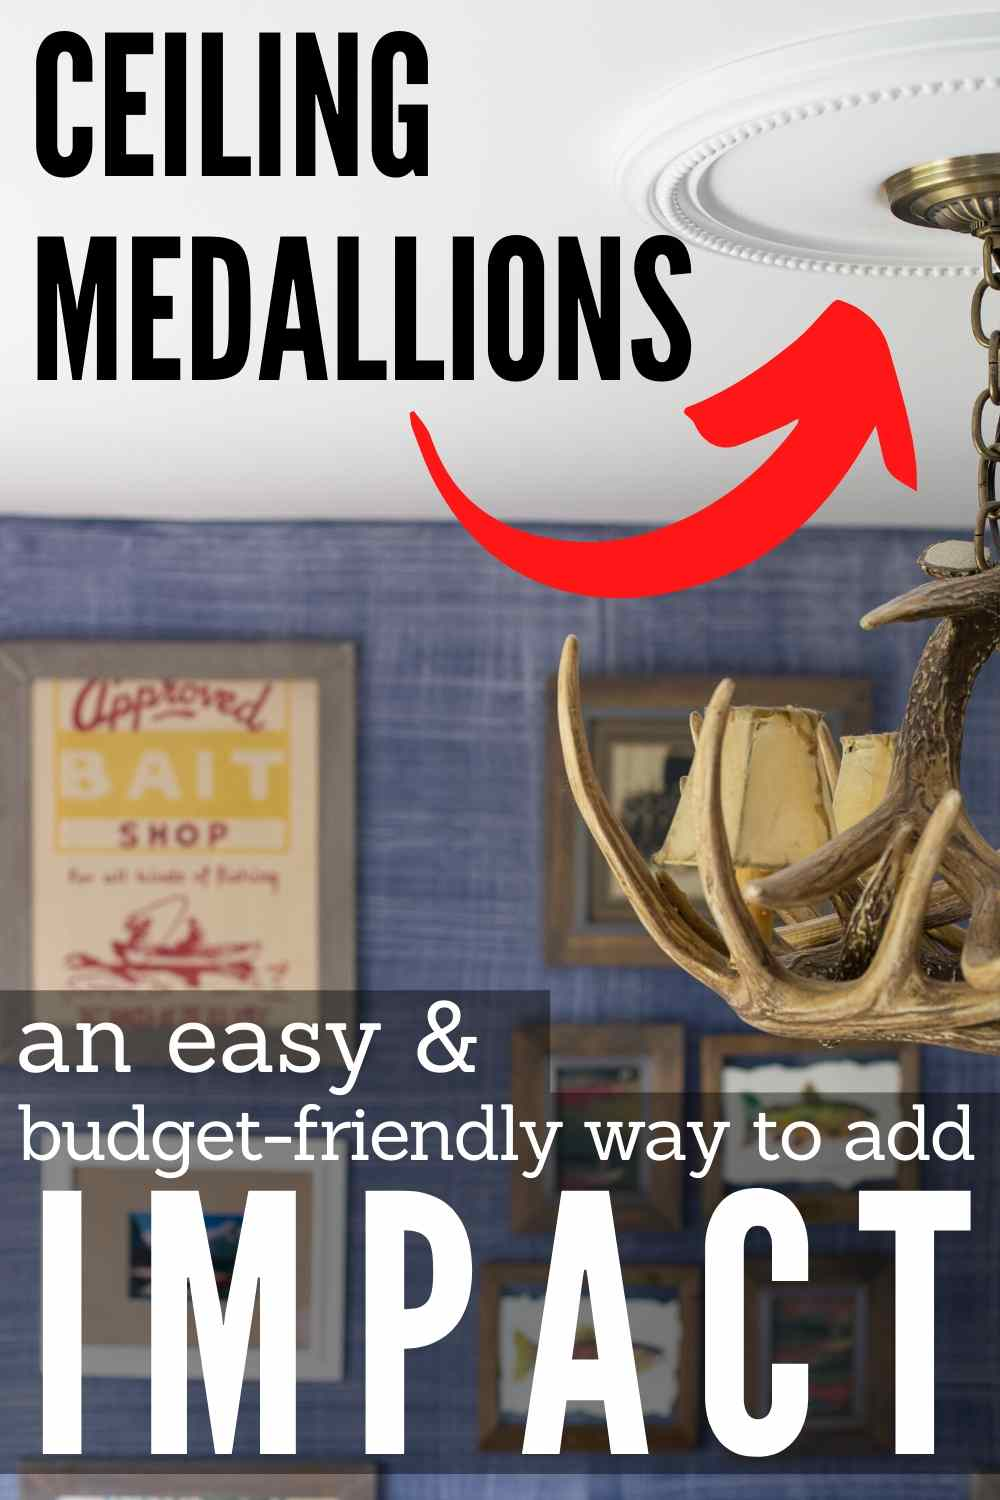 """ceiling medallions an easy & budget-friendly way to add impact"""